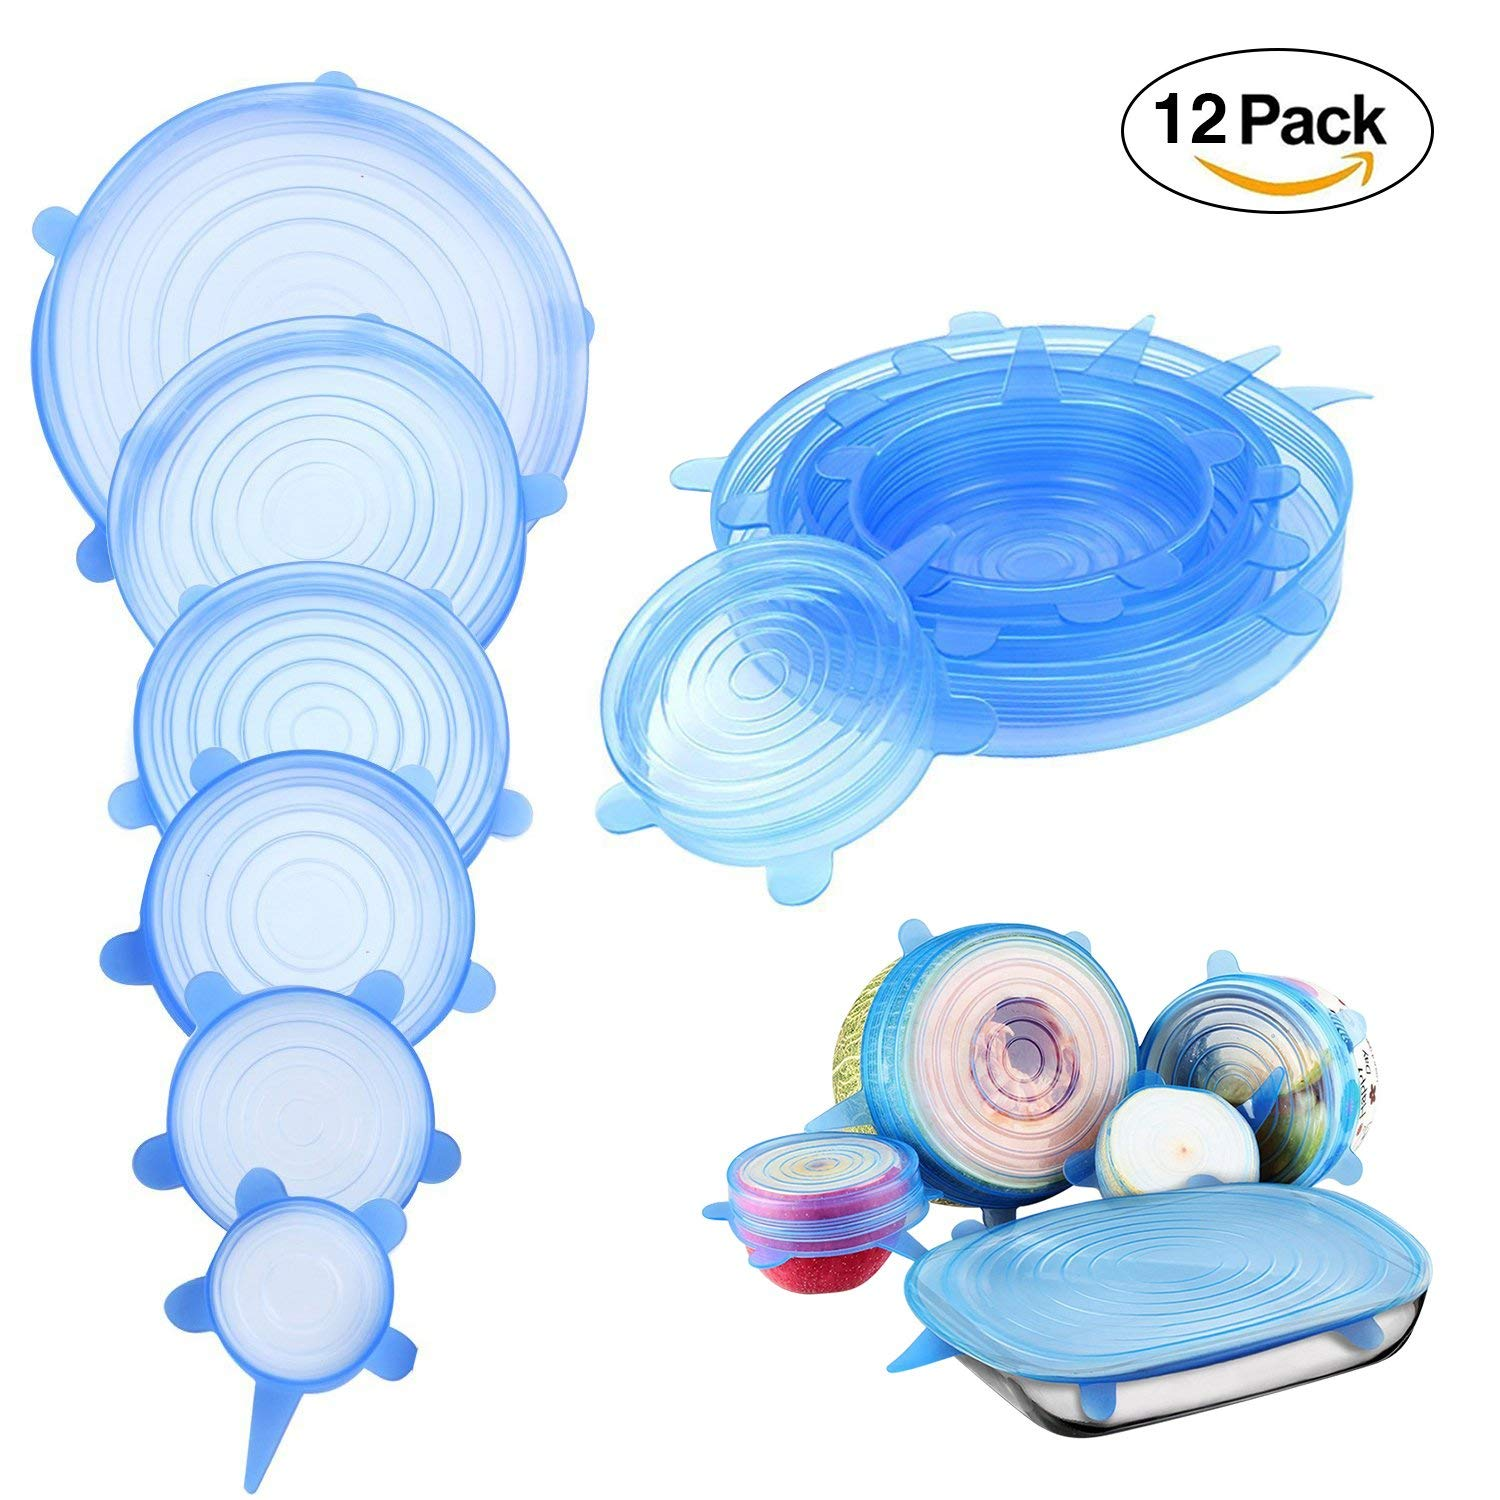 Silicone Stretch Lids, Reusable Food Covers Bowl Cover Lids for Any Cans, Cups, Bowl - Pack of 6Pcs or 12Pcs (6Pcs,Transparent color)(12Pcs,Transparent color)(6Pcs,Blue)(12Pcs,Blue)